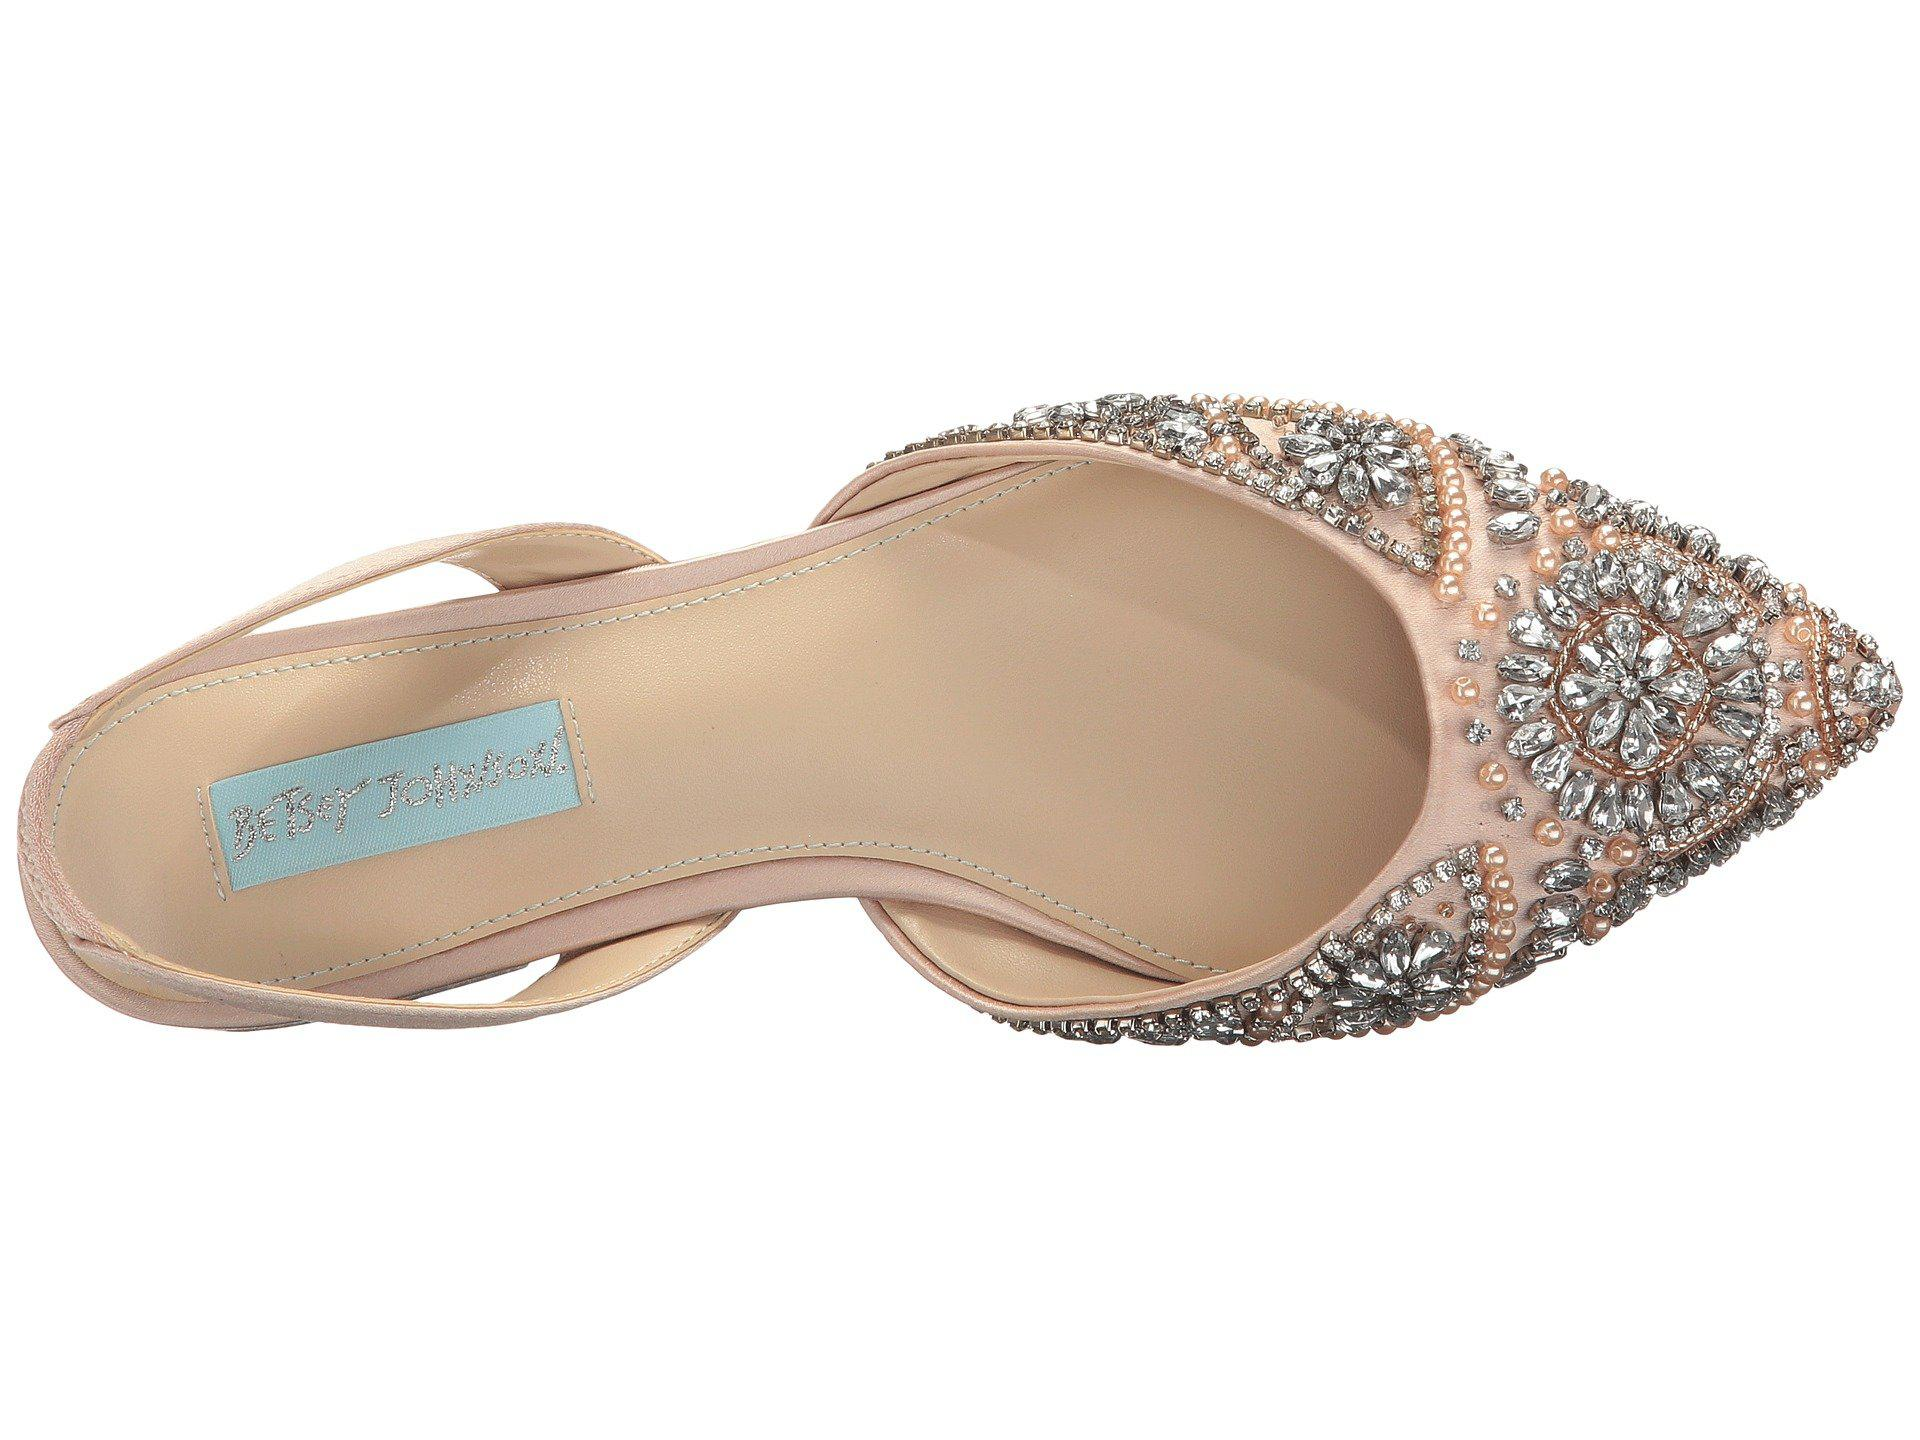 40859e66a71 Betsey Johnson - Multicolor Molly (champagne Satin) Women s Shoes - Lyst.  View fullscreen